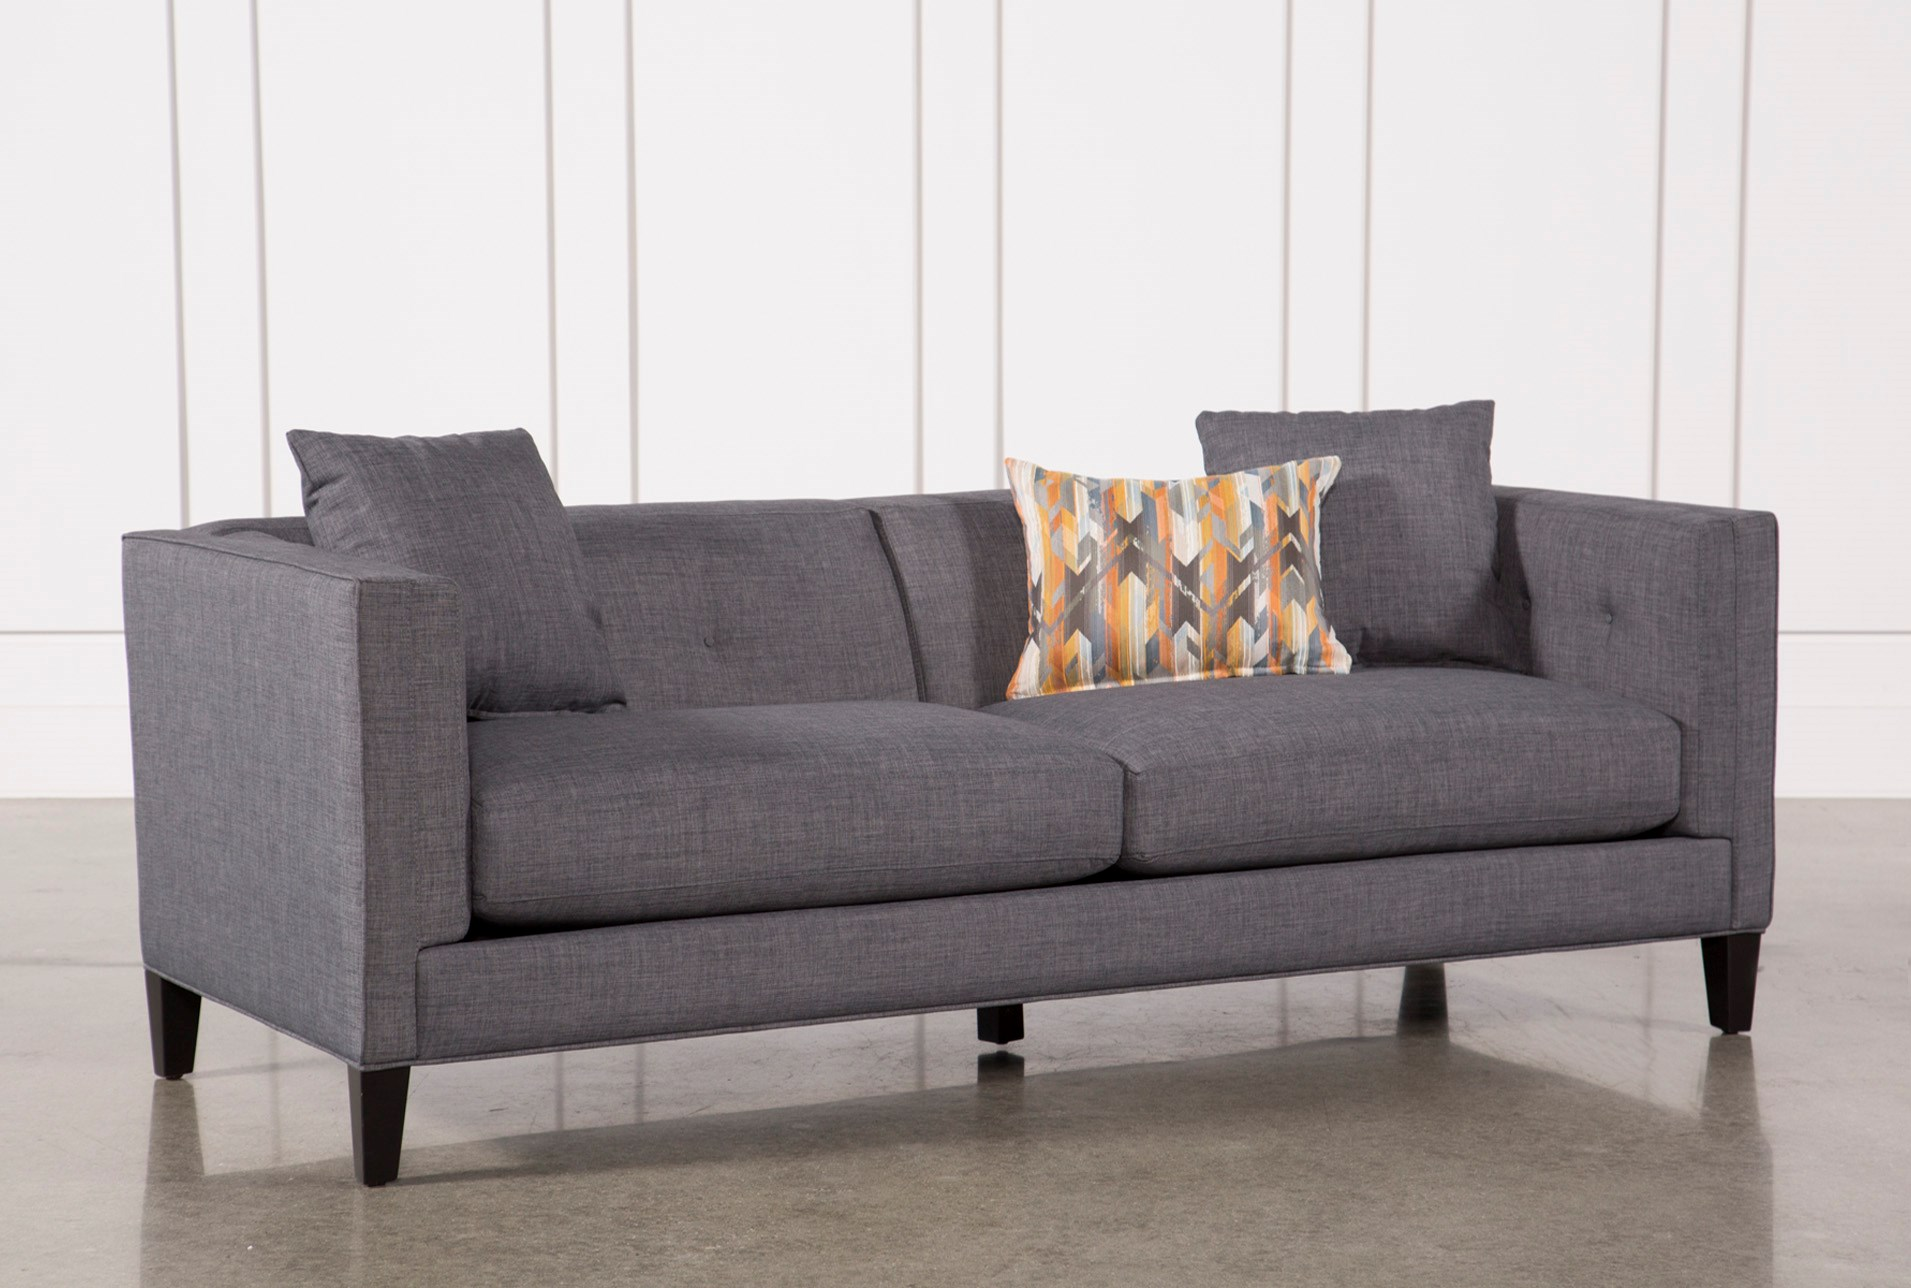 Sofa Pictures Living Room. Brennan Sofa  Qty 1 has been successfully added to your Cart Living Spaces